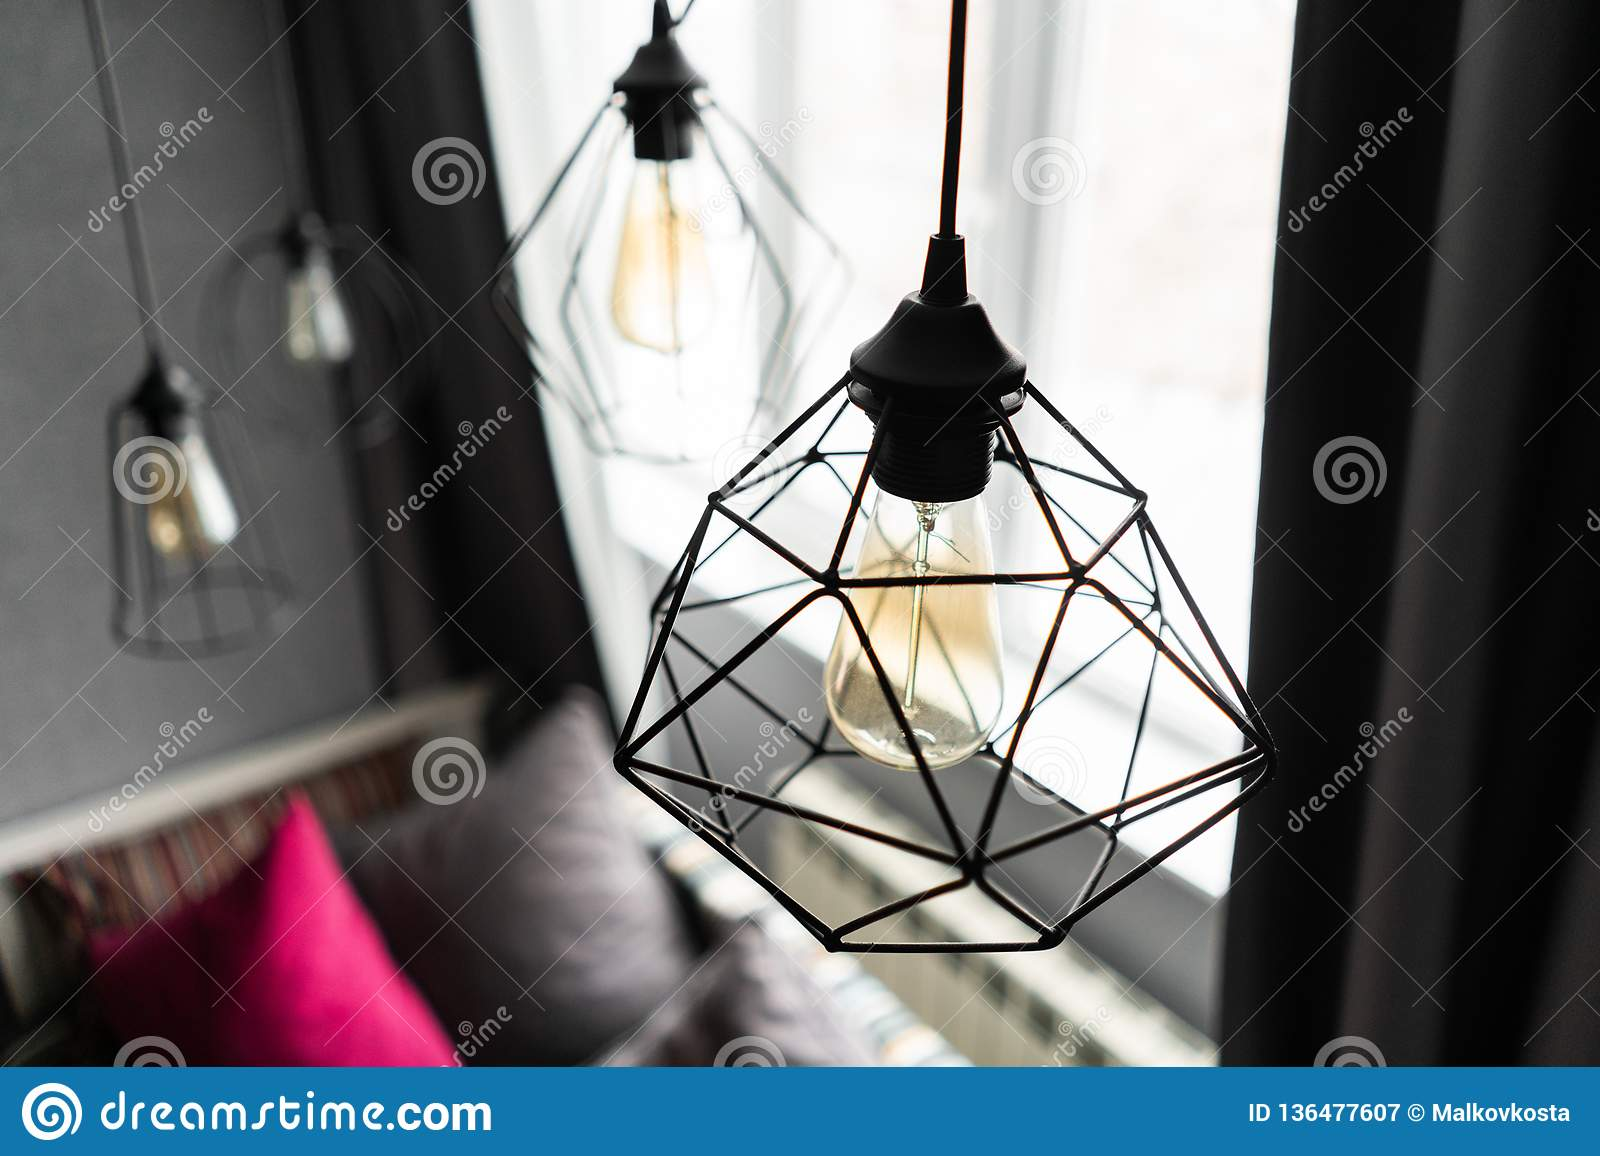 Loft Style Iron Lampshade With A Light Bulb In The Interior Living